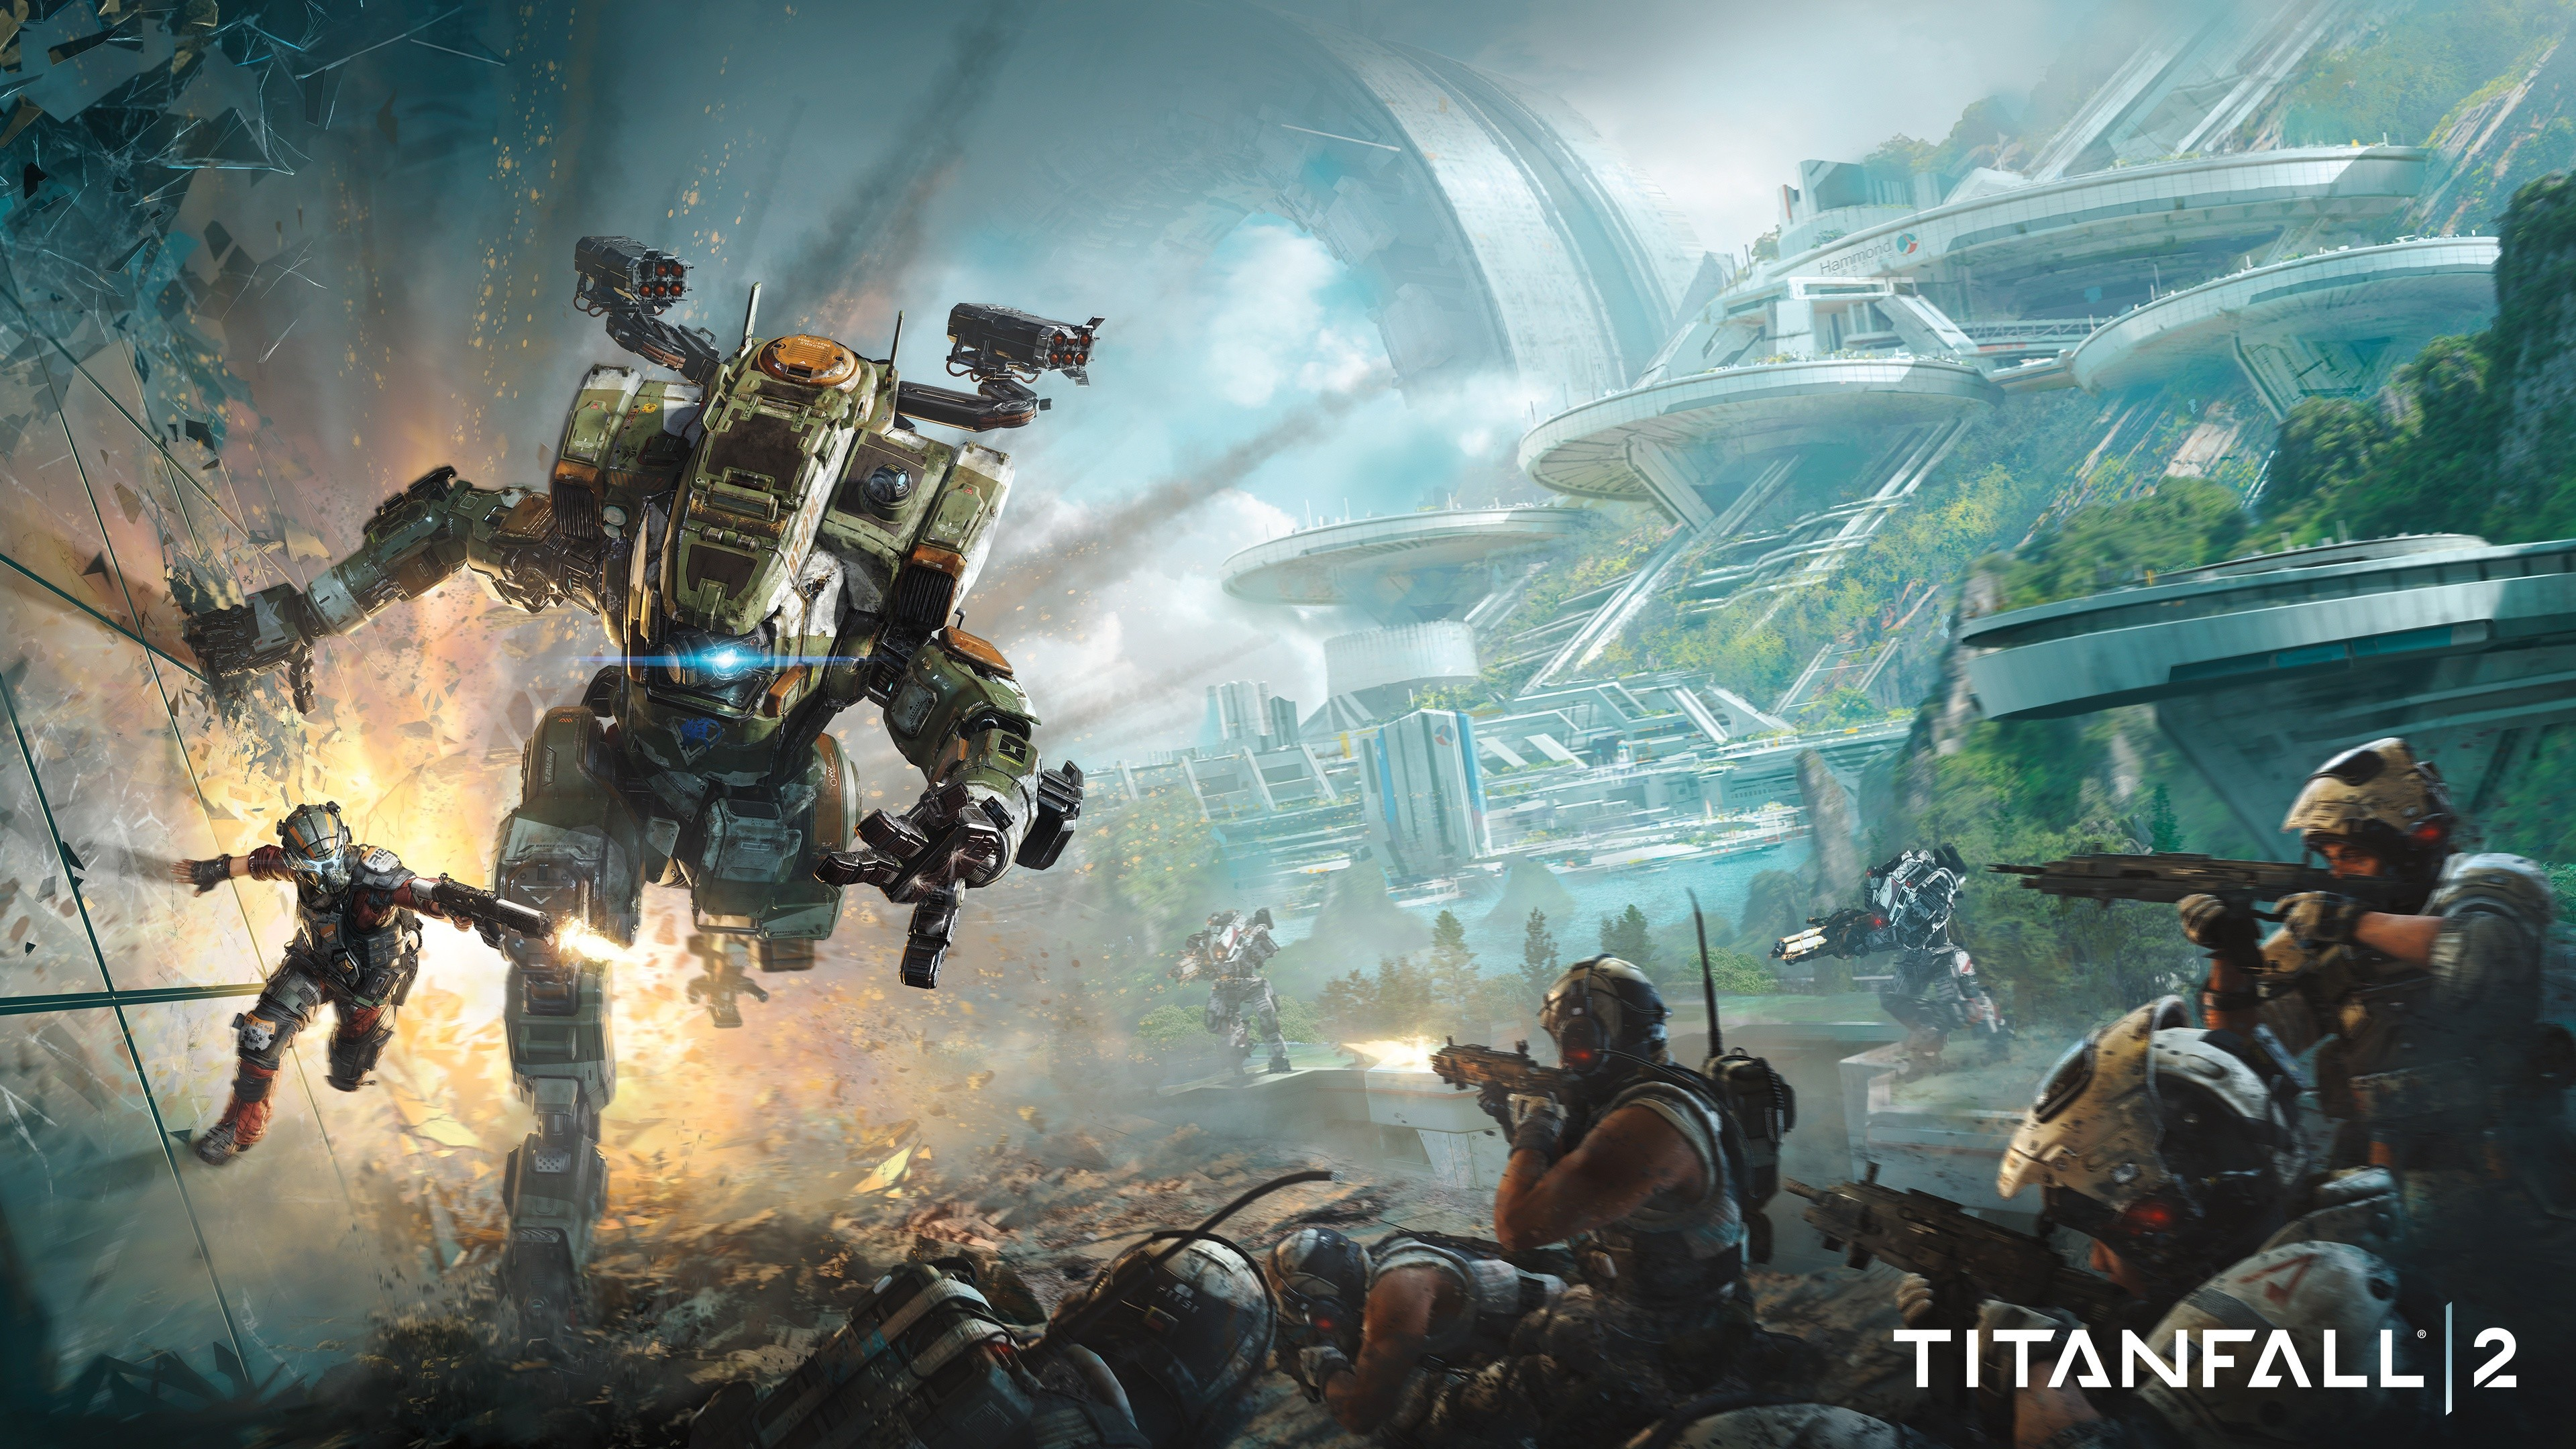 Cool Wallpapers For Fall Wallpaper Titanfall 2 E3 2016 Shooter Best Games